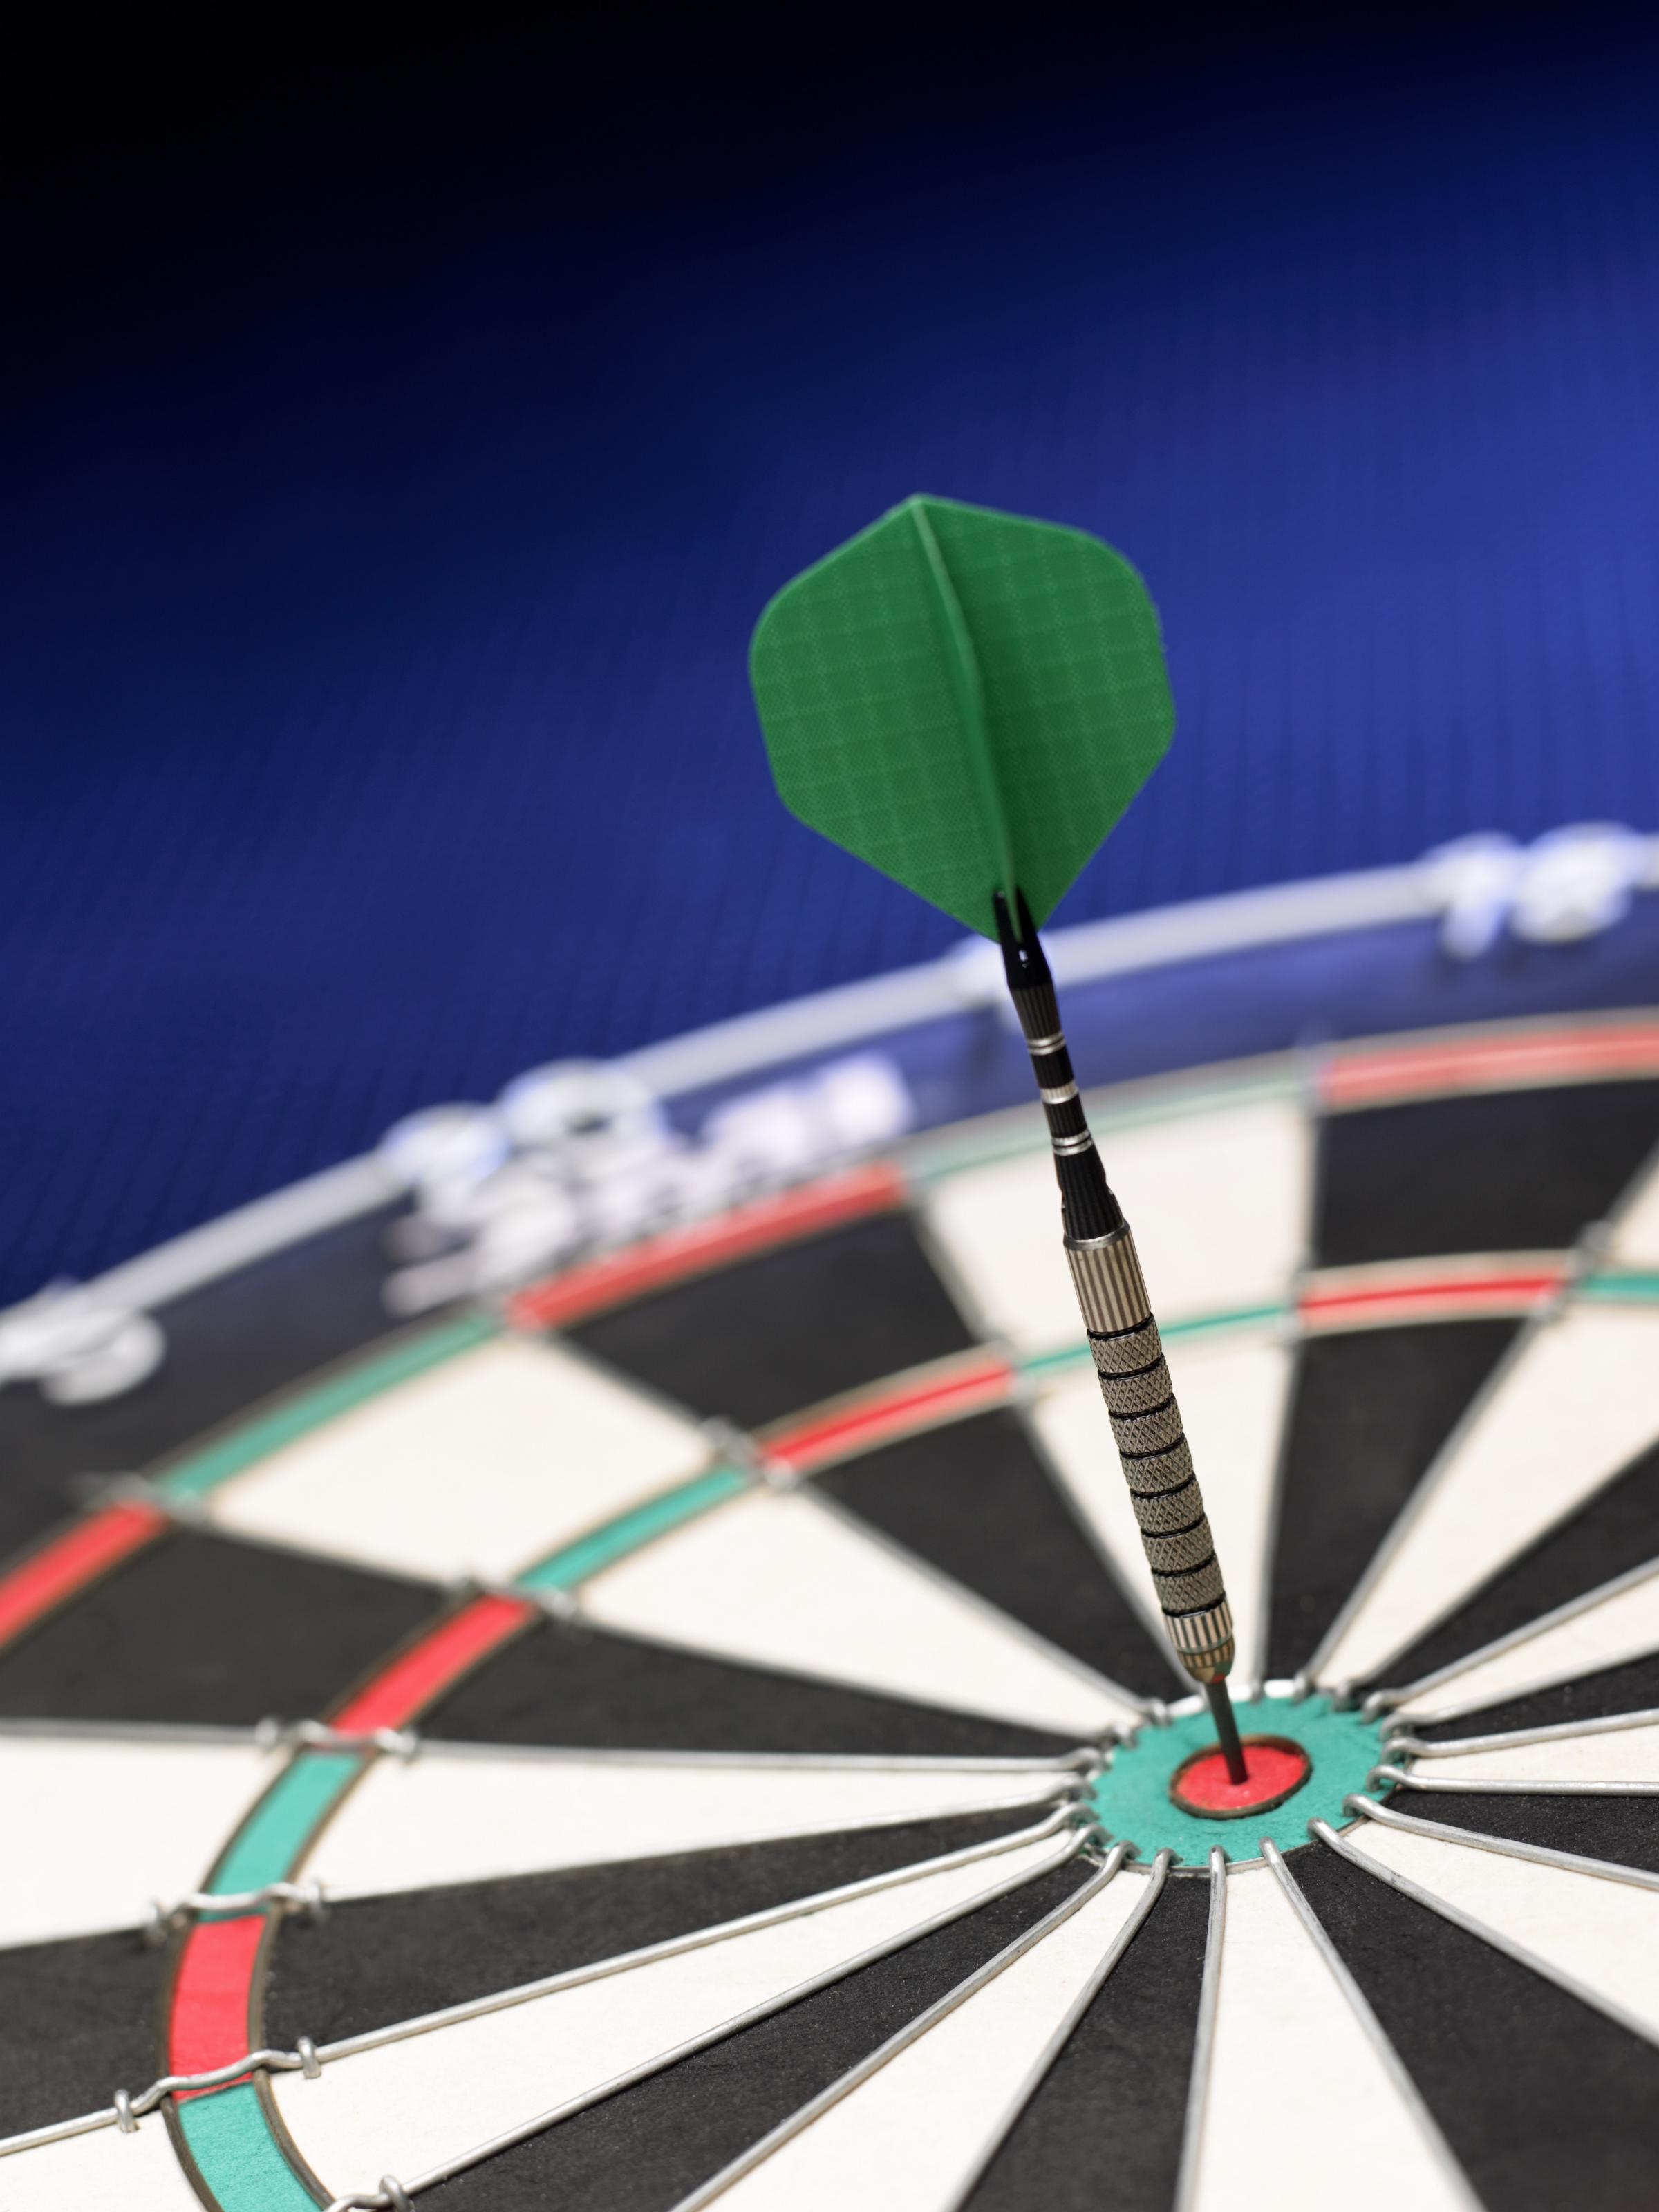 There will be a charity darts competition at the Richmond Club